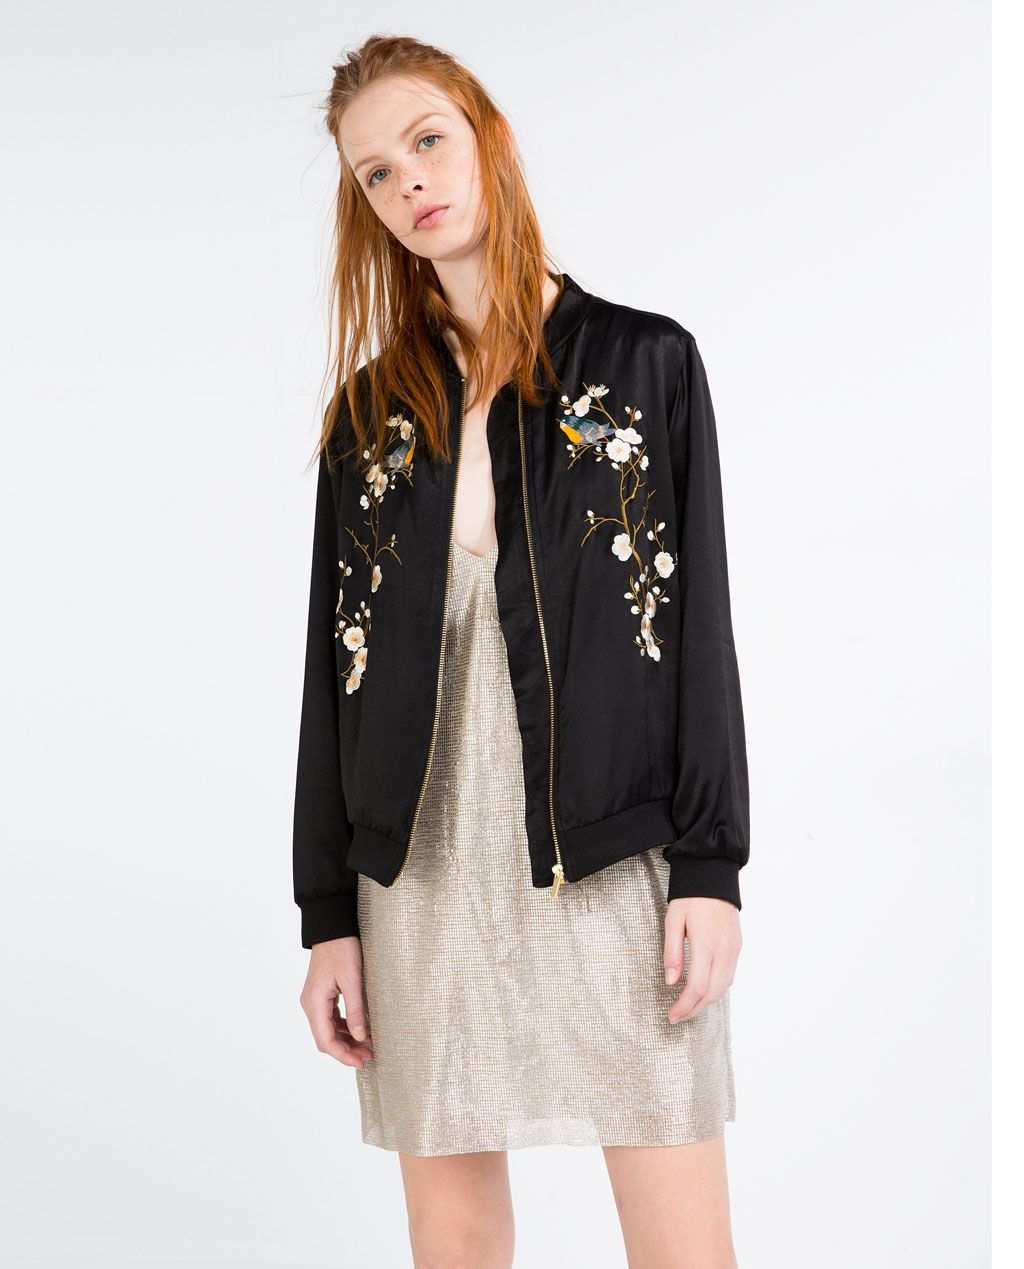 Floral Embroidered Bomber Jacket Bombers Woman Bomberjacke Damen Bomberjacke Jacken